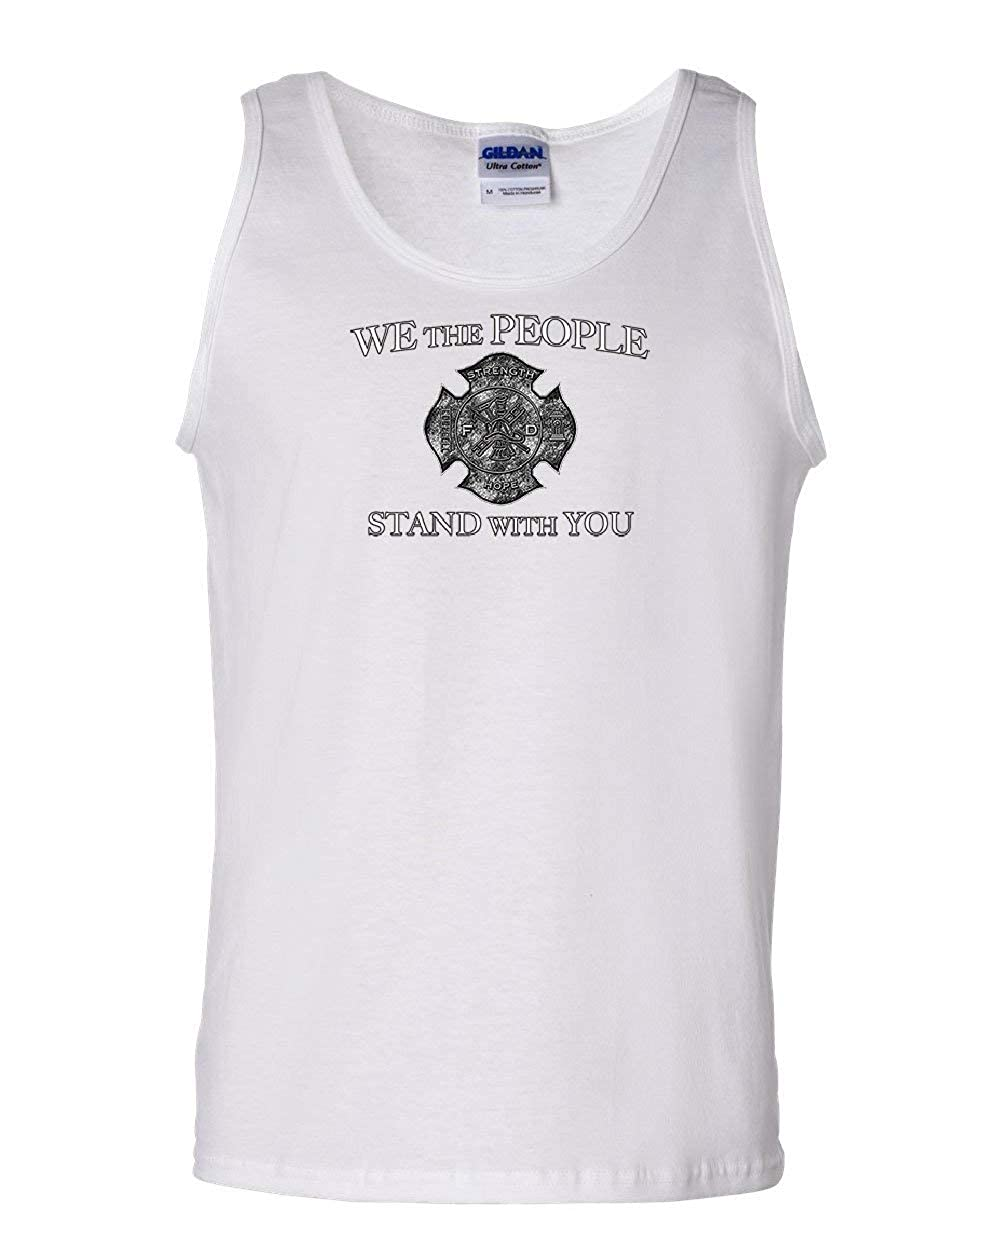 We The People Stand with You Tank Top Firefighter Fire and Rescue Sleeveless